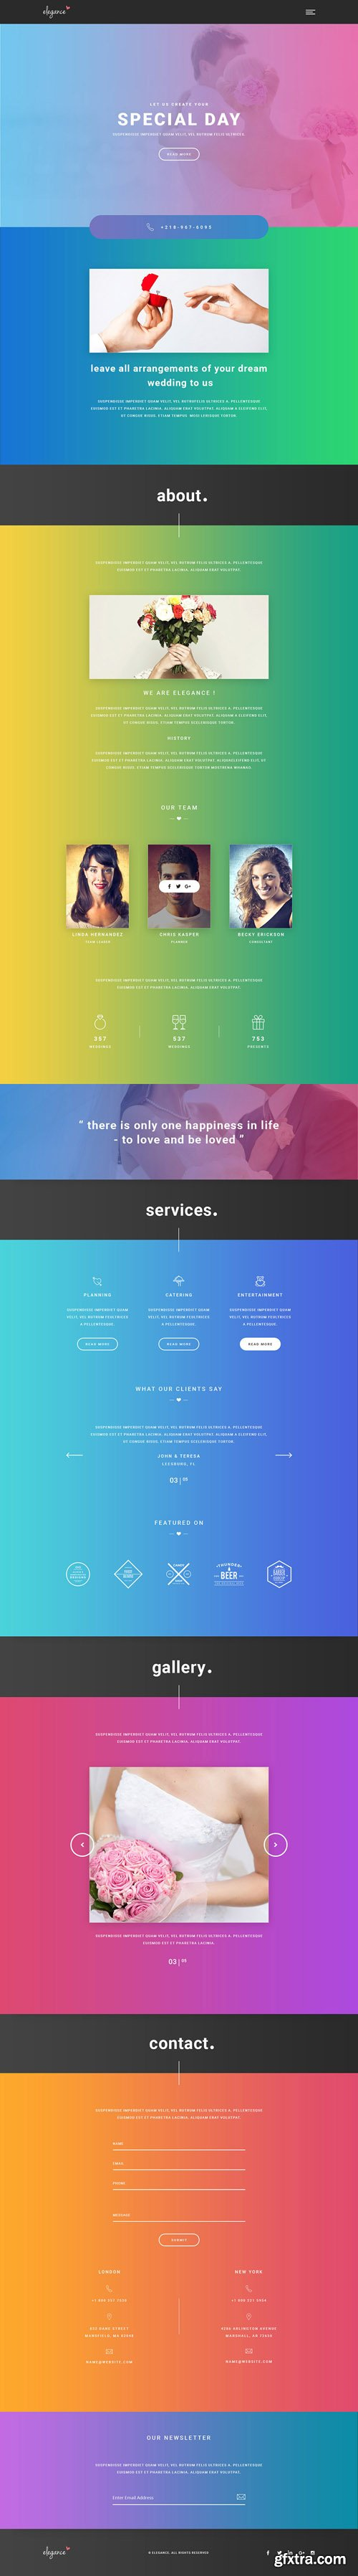 WellMadePixel - Elegance - One Page Wedding Agency Muse Template